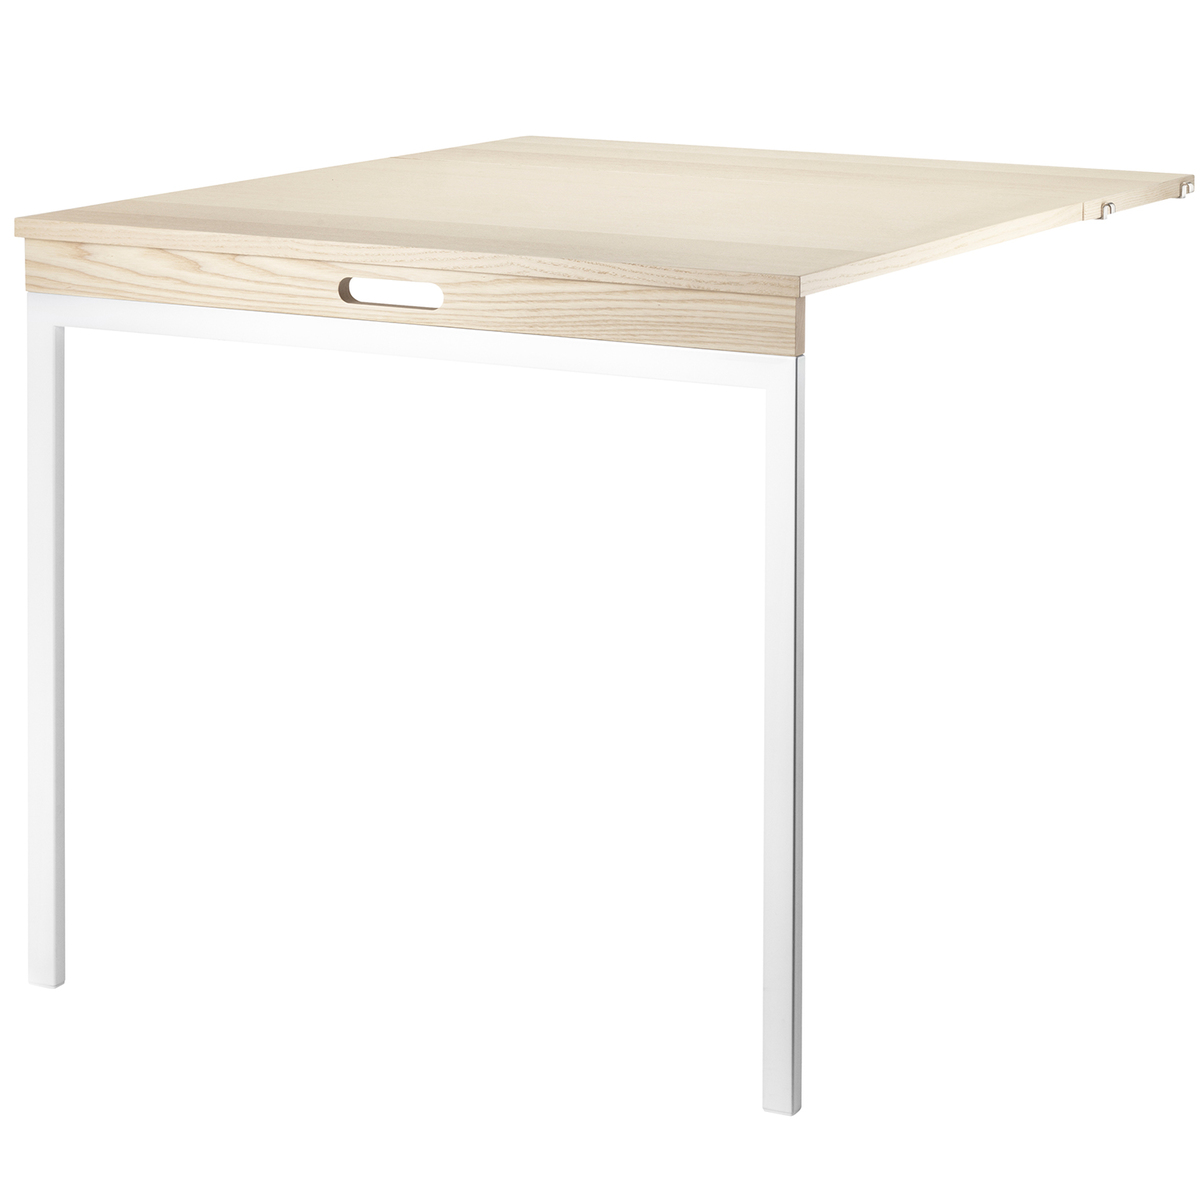 String Furniture String folding table, ash - white from String Furniture